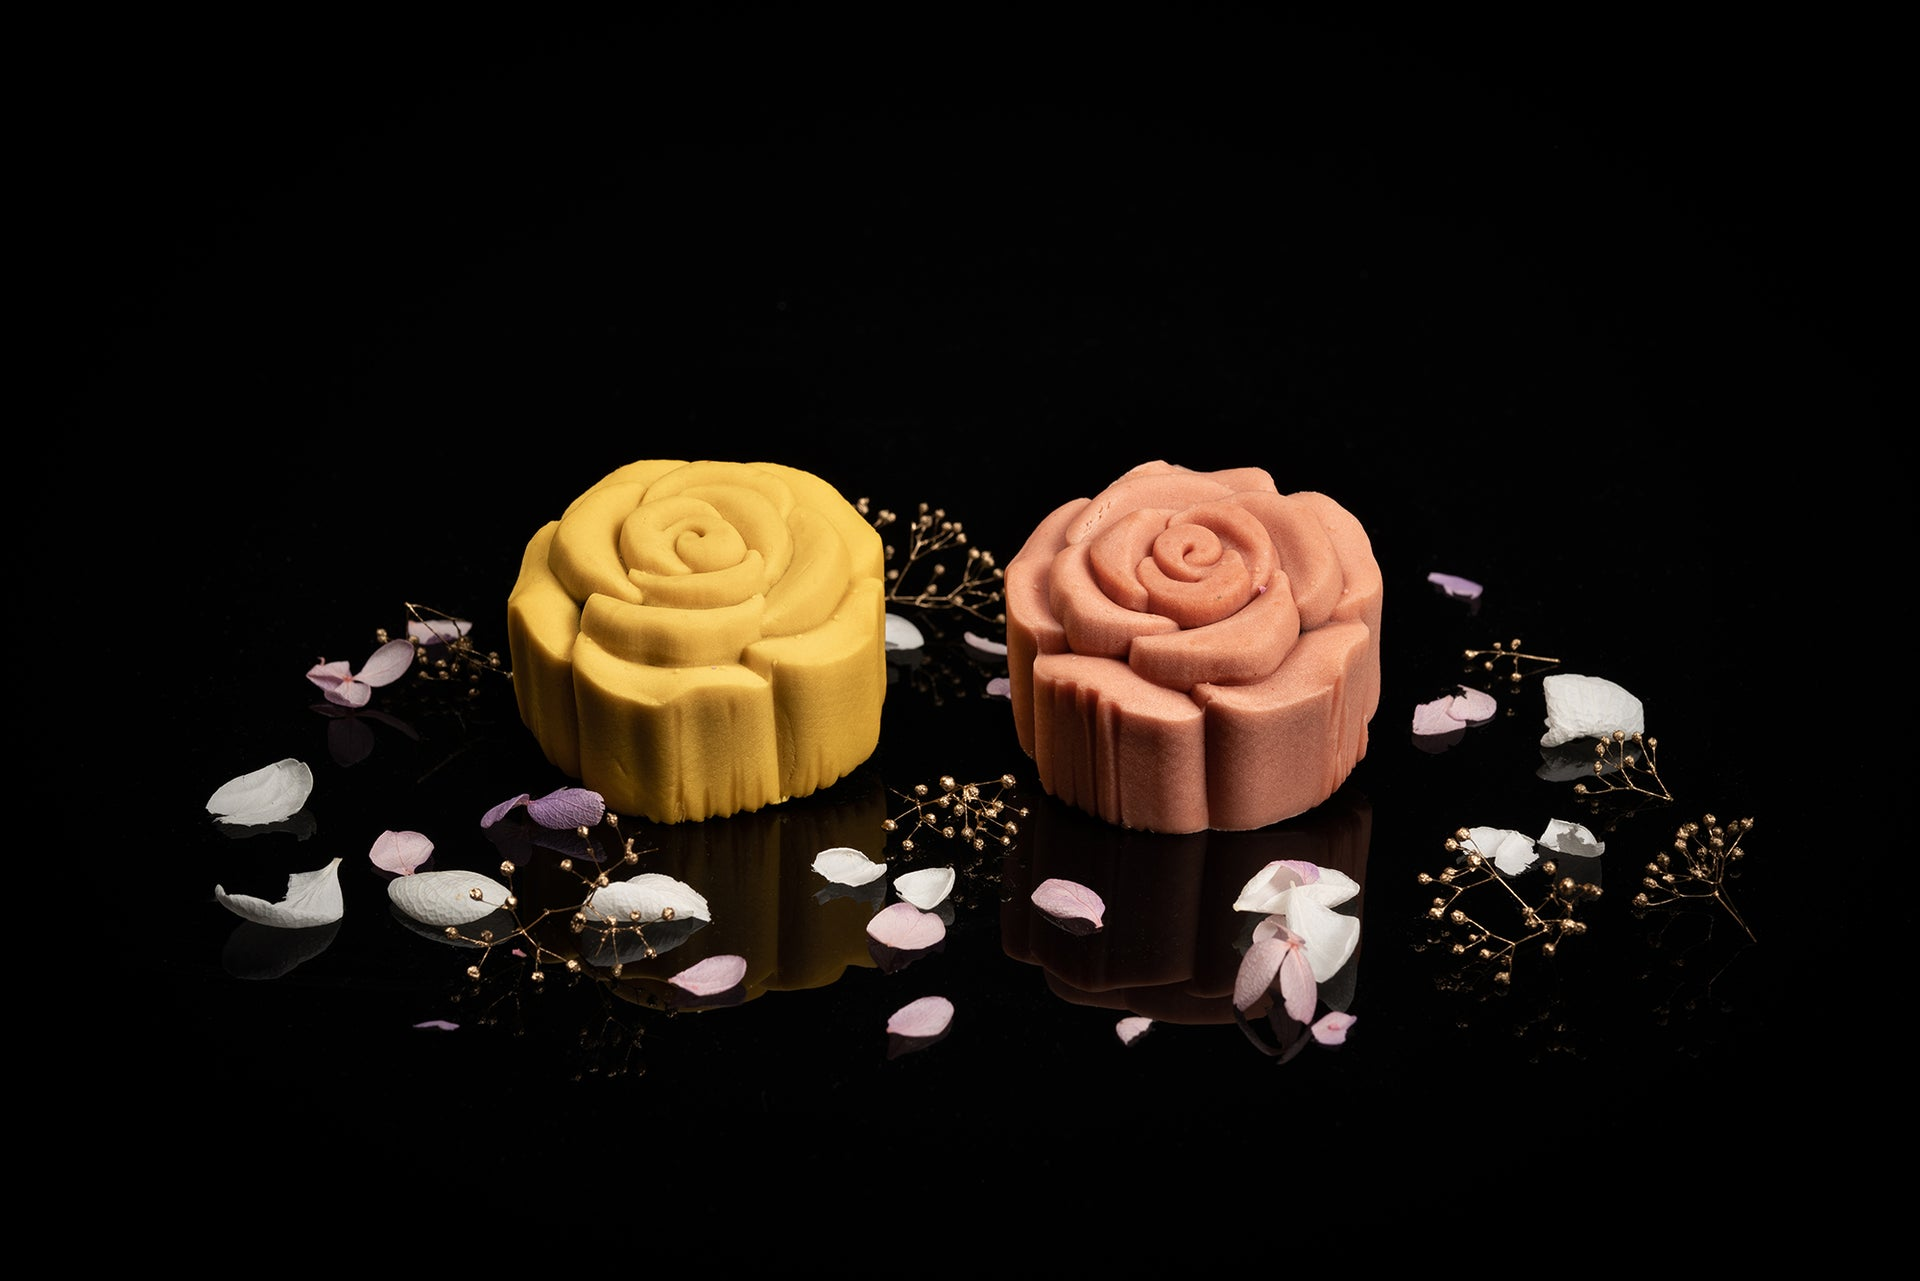 LESEAN ®️ x LE PETIT PRINCE®️ Preserved Flower Mooncake Box Set (12 pcs special Edition) - Saffron Yellow